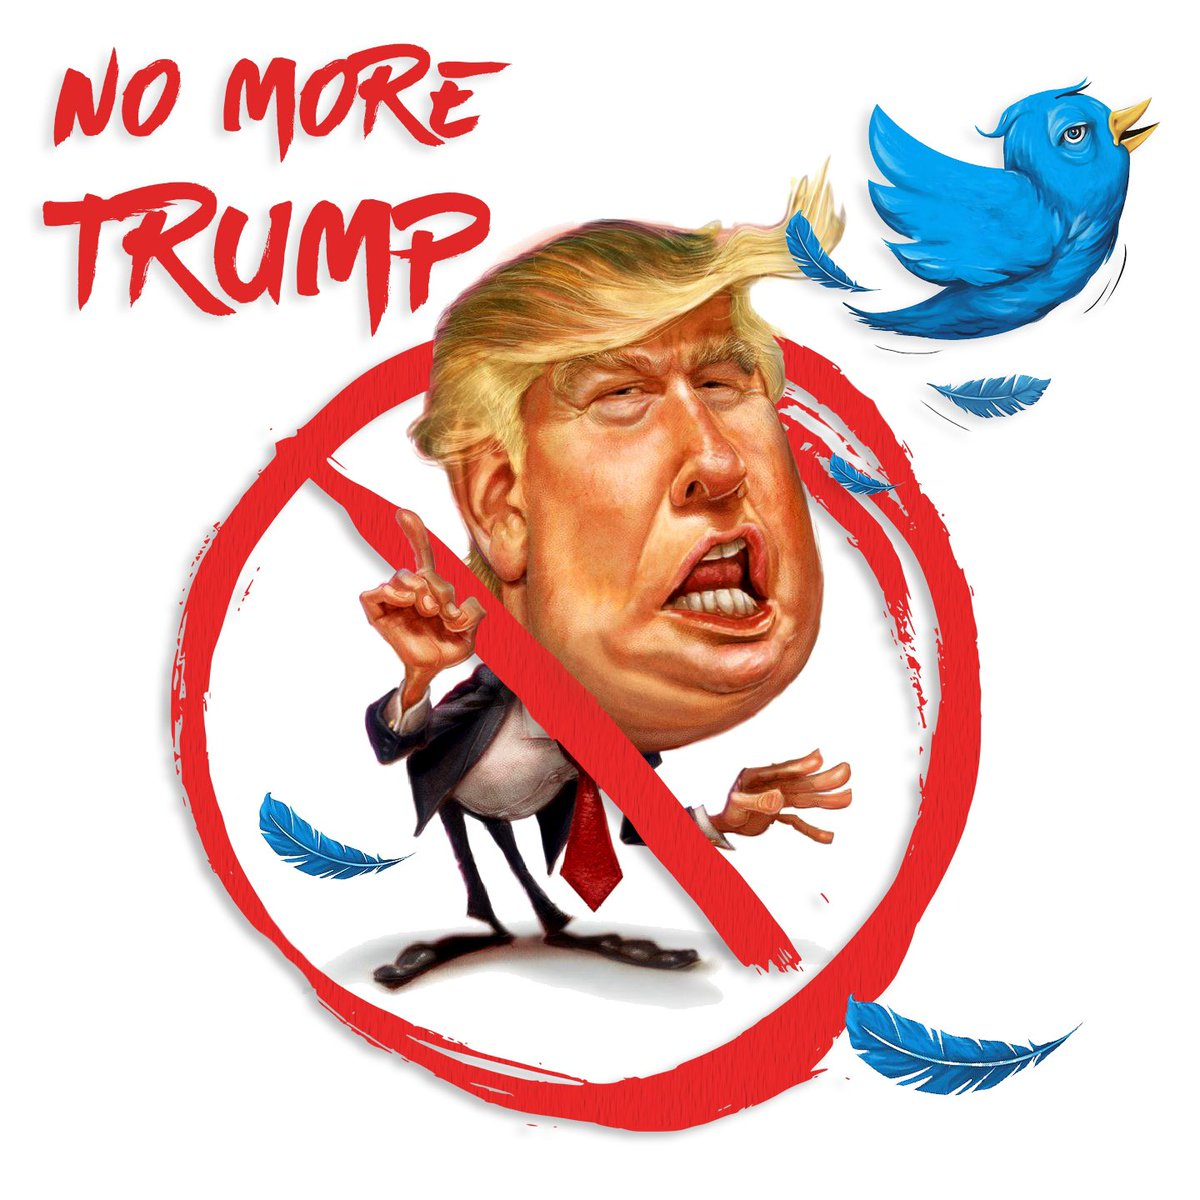 @realDonaldTrump @CheriJacobus @DHSgov Ok, it's official now, so I can finally use this beautiful image I created in photoshop again.  Hopefully the 25th amendment can be invoked or impeachment can be done soon enough to get him out of office today and keep him out indefinitely.